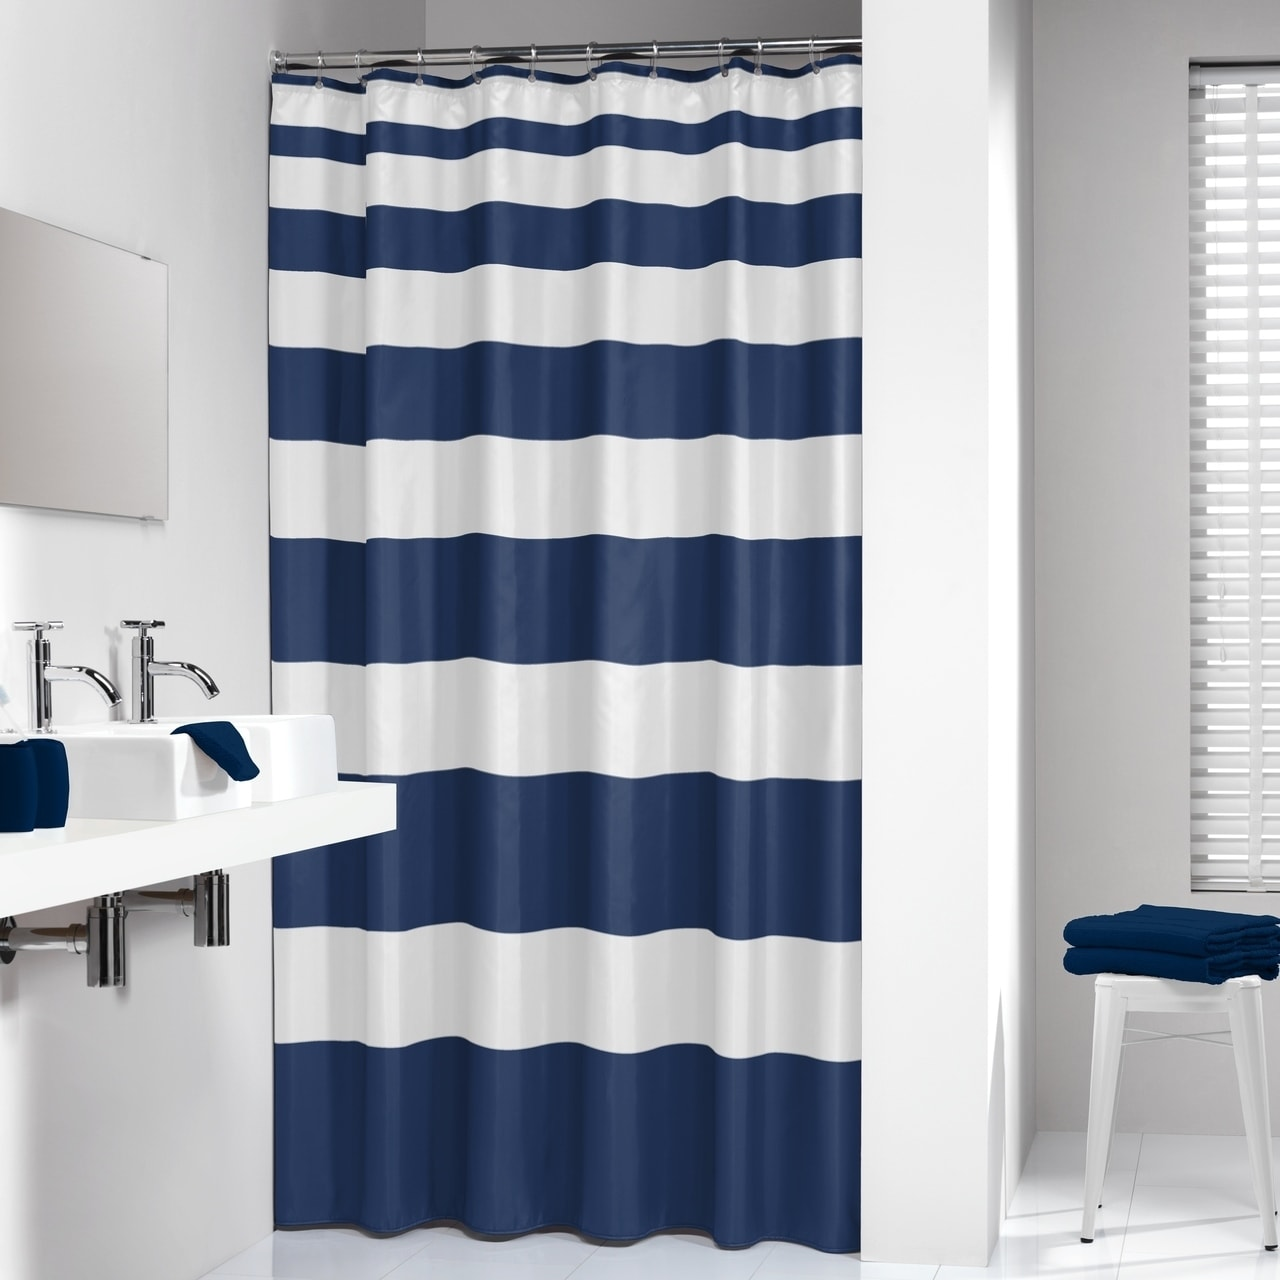 Long Shower Curtain Sealskin Extra Long Shower Curtain 78 X 72 Inch Nautica Stripes Blue And White Fabric